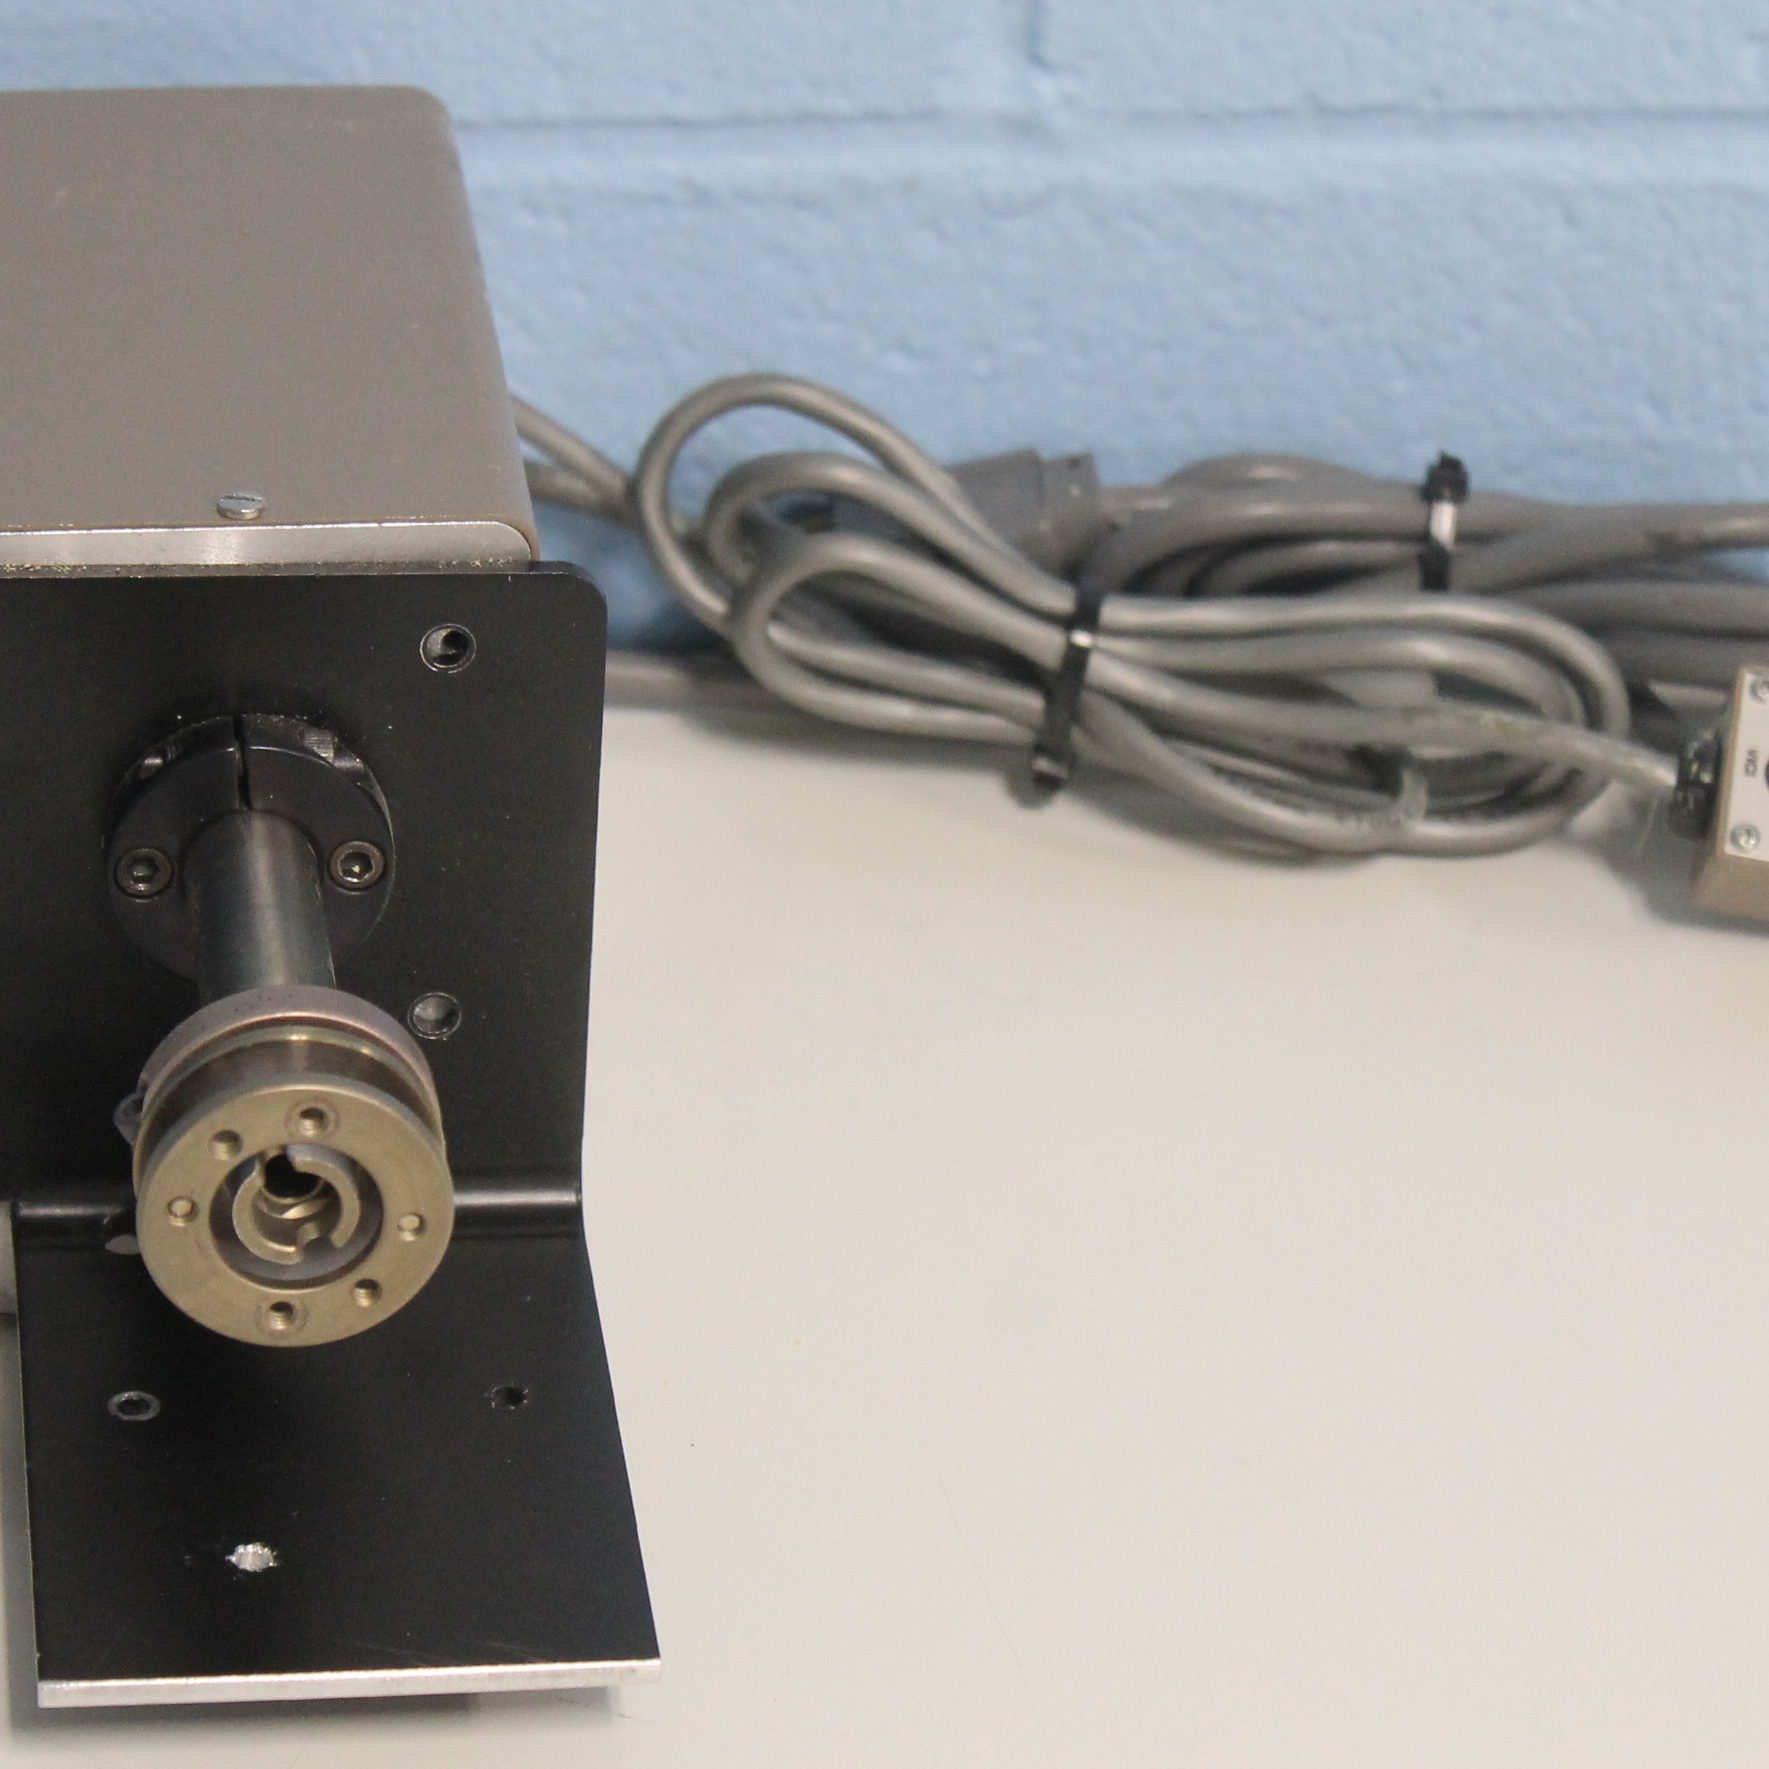 VICI EQ-36 Two Position Valve Actuator with Remote Control Image